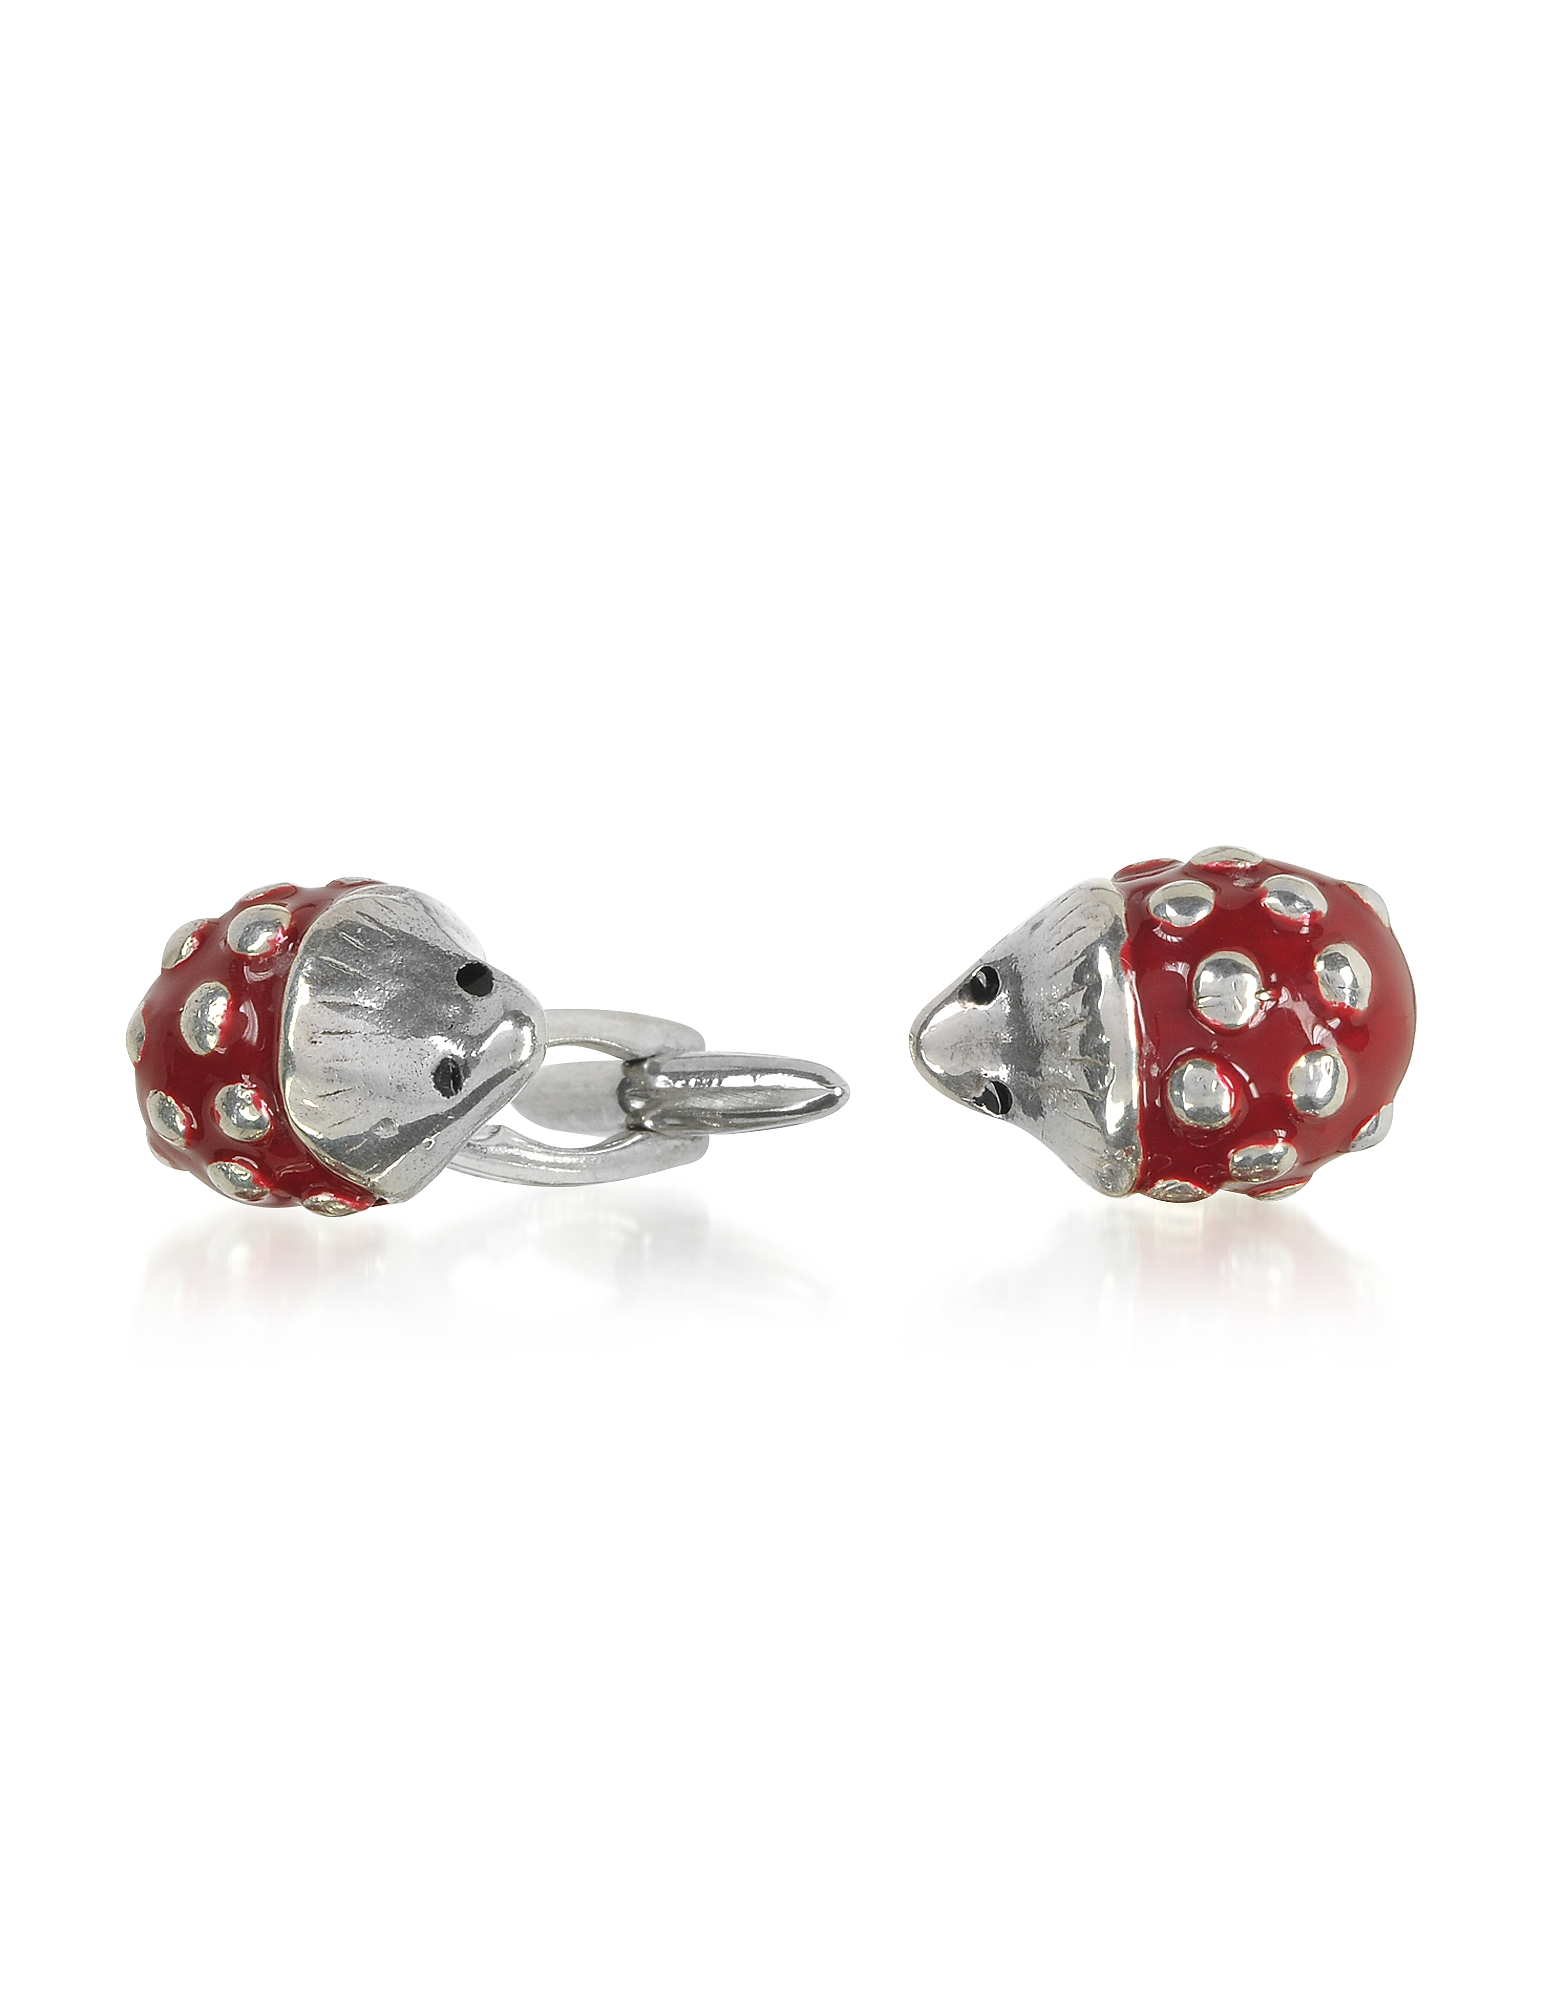 Forzieri Exclusives Designer Vintage Cufflinks, Sterling Silver and Enamel Hedgehog Cufflinks